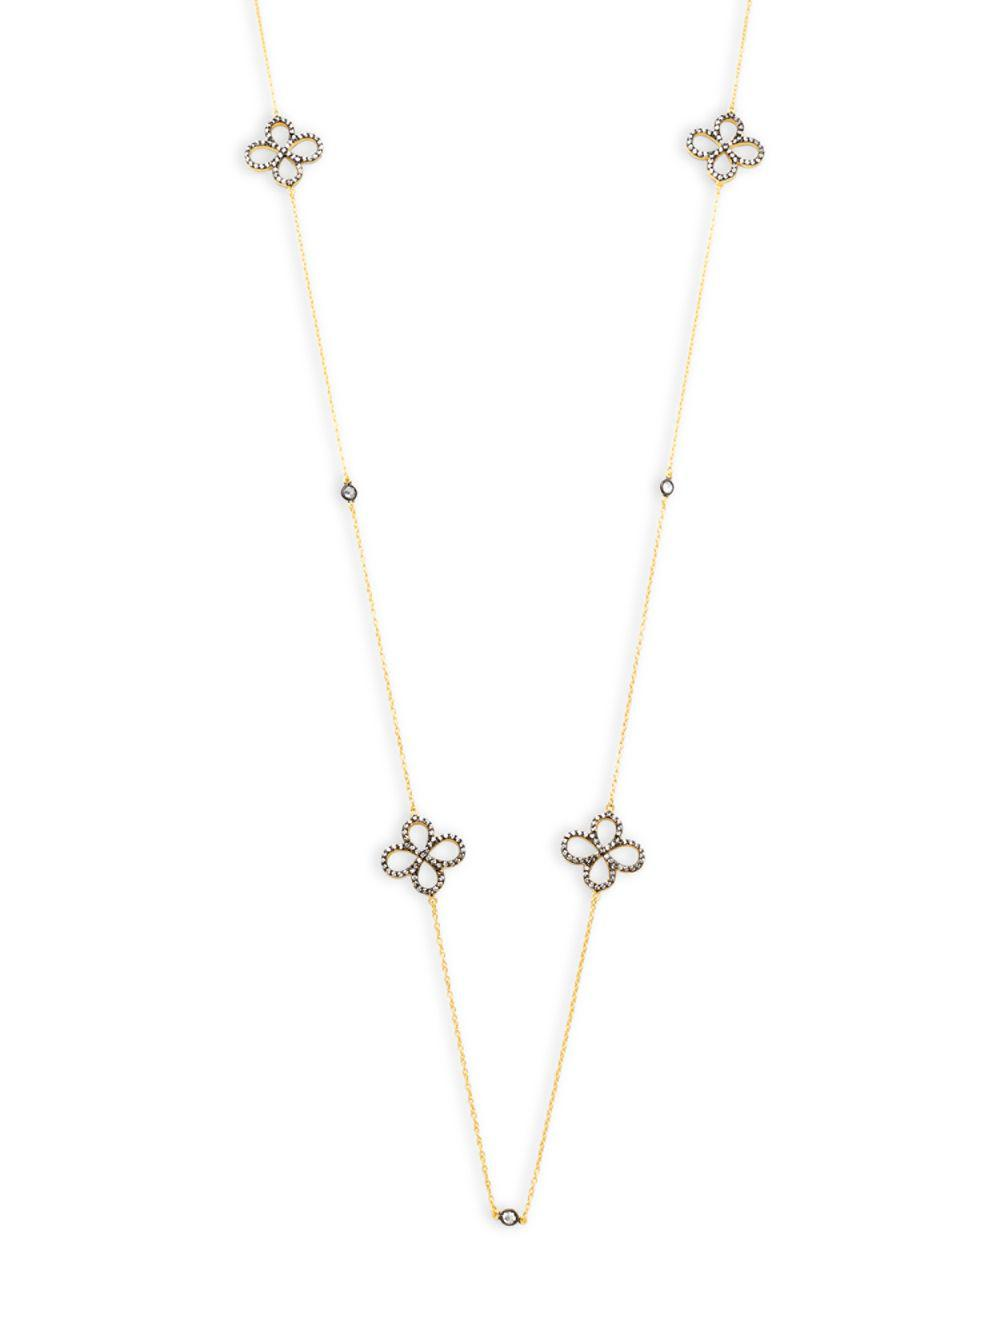 Freida Rothman Two Tone Open Pave Clover Station Long Wrap Necklace 7wNy7GG3h7